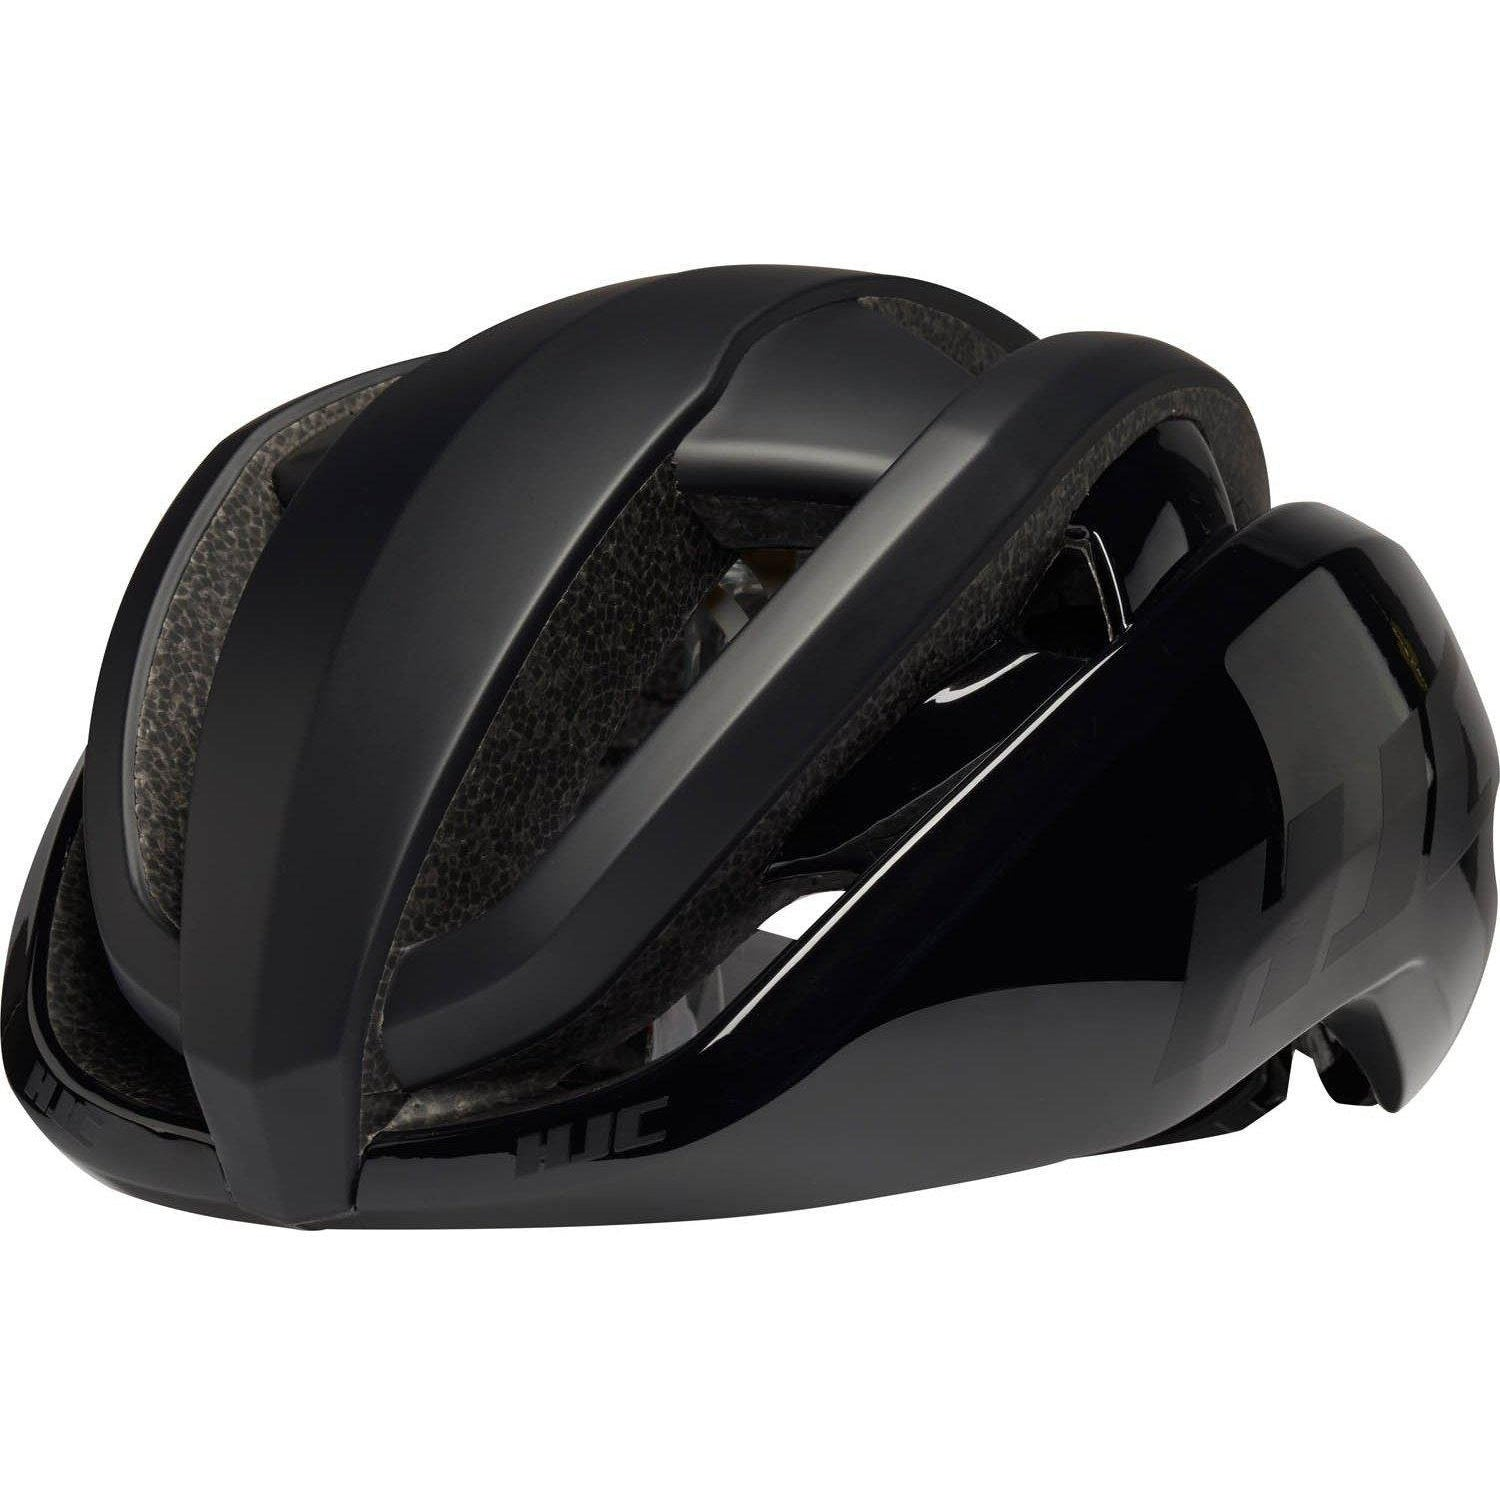 HJC-HJC Ibex 2.0 Road Cycling Helmet-Black-S-HJC81243101-saddleback-elite-performance-cycling